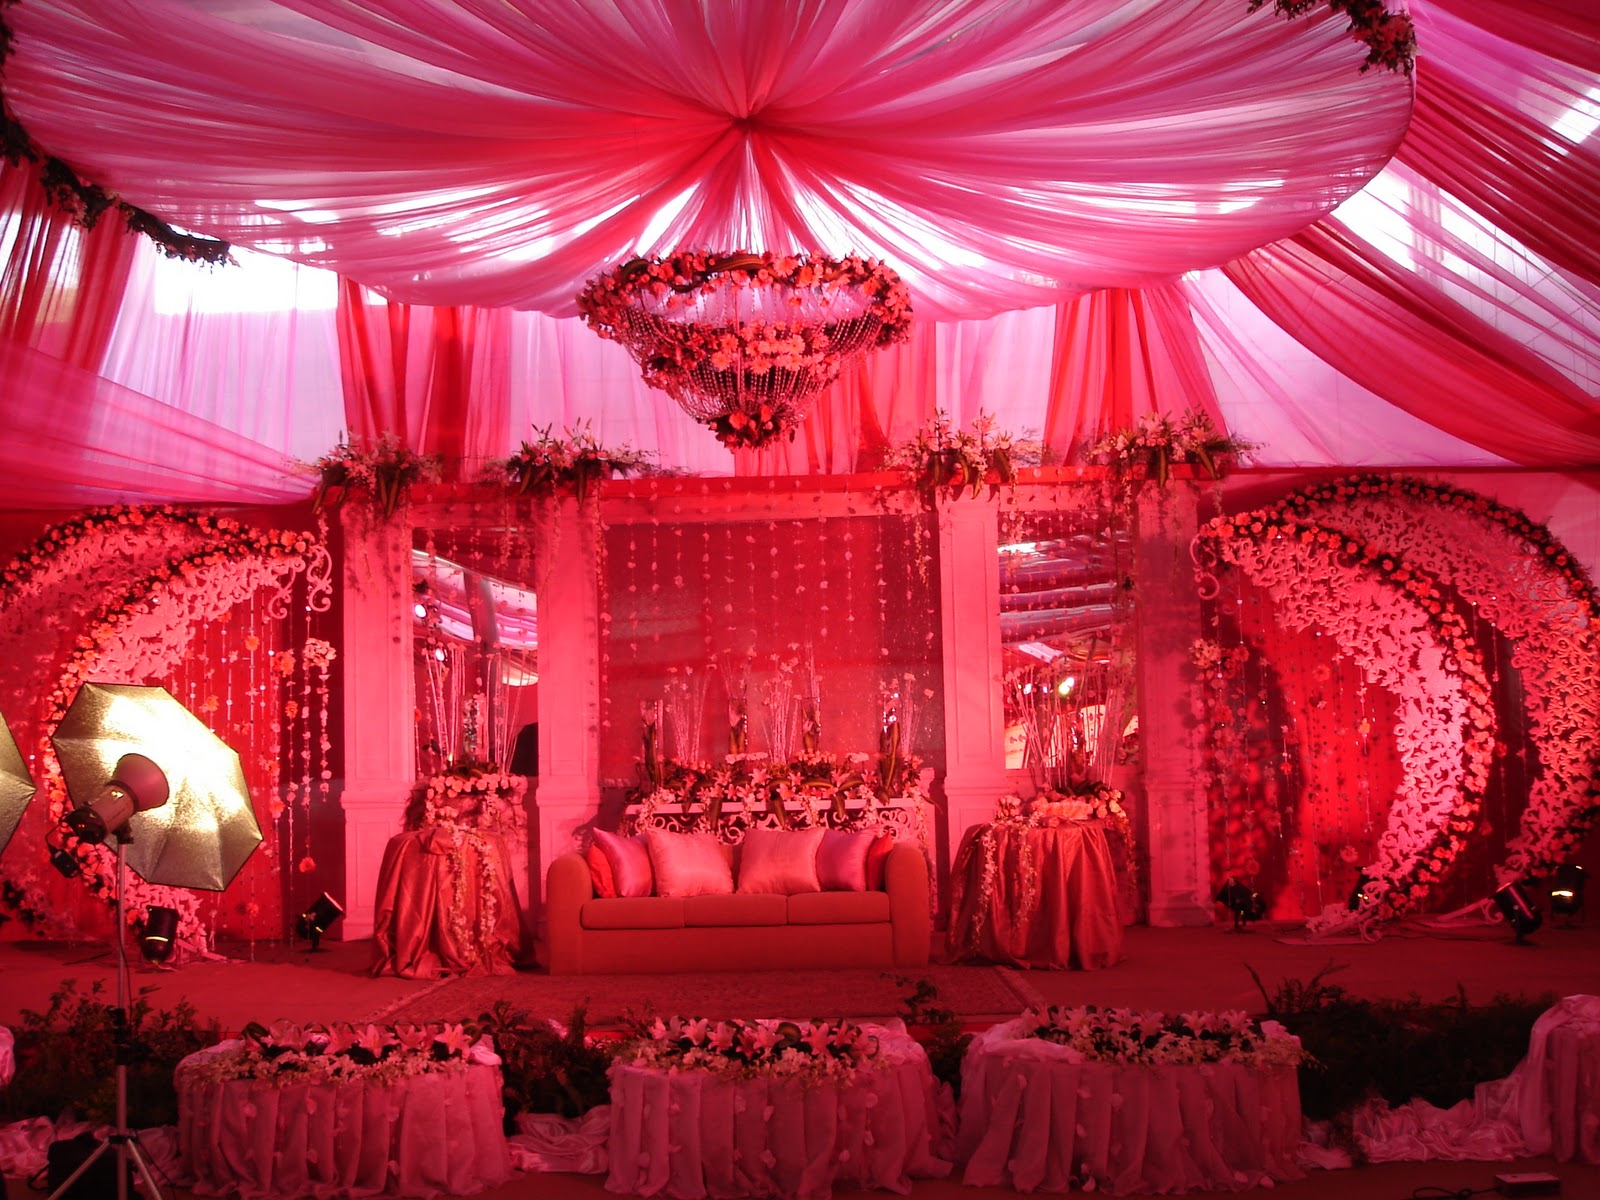 Meethi shaadiyan color me pink blue white - Pink and white decorations ...